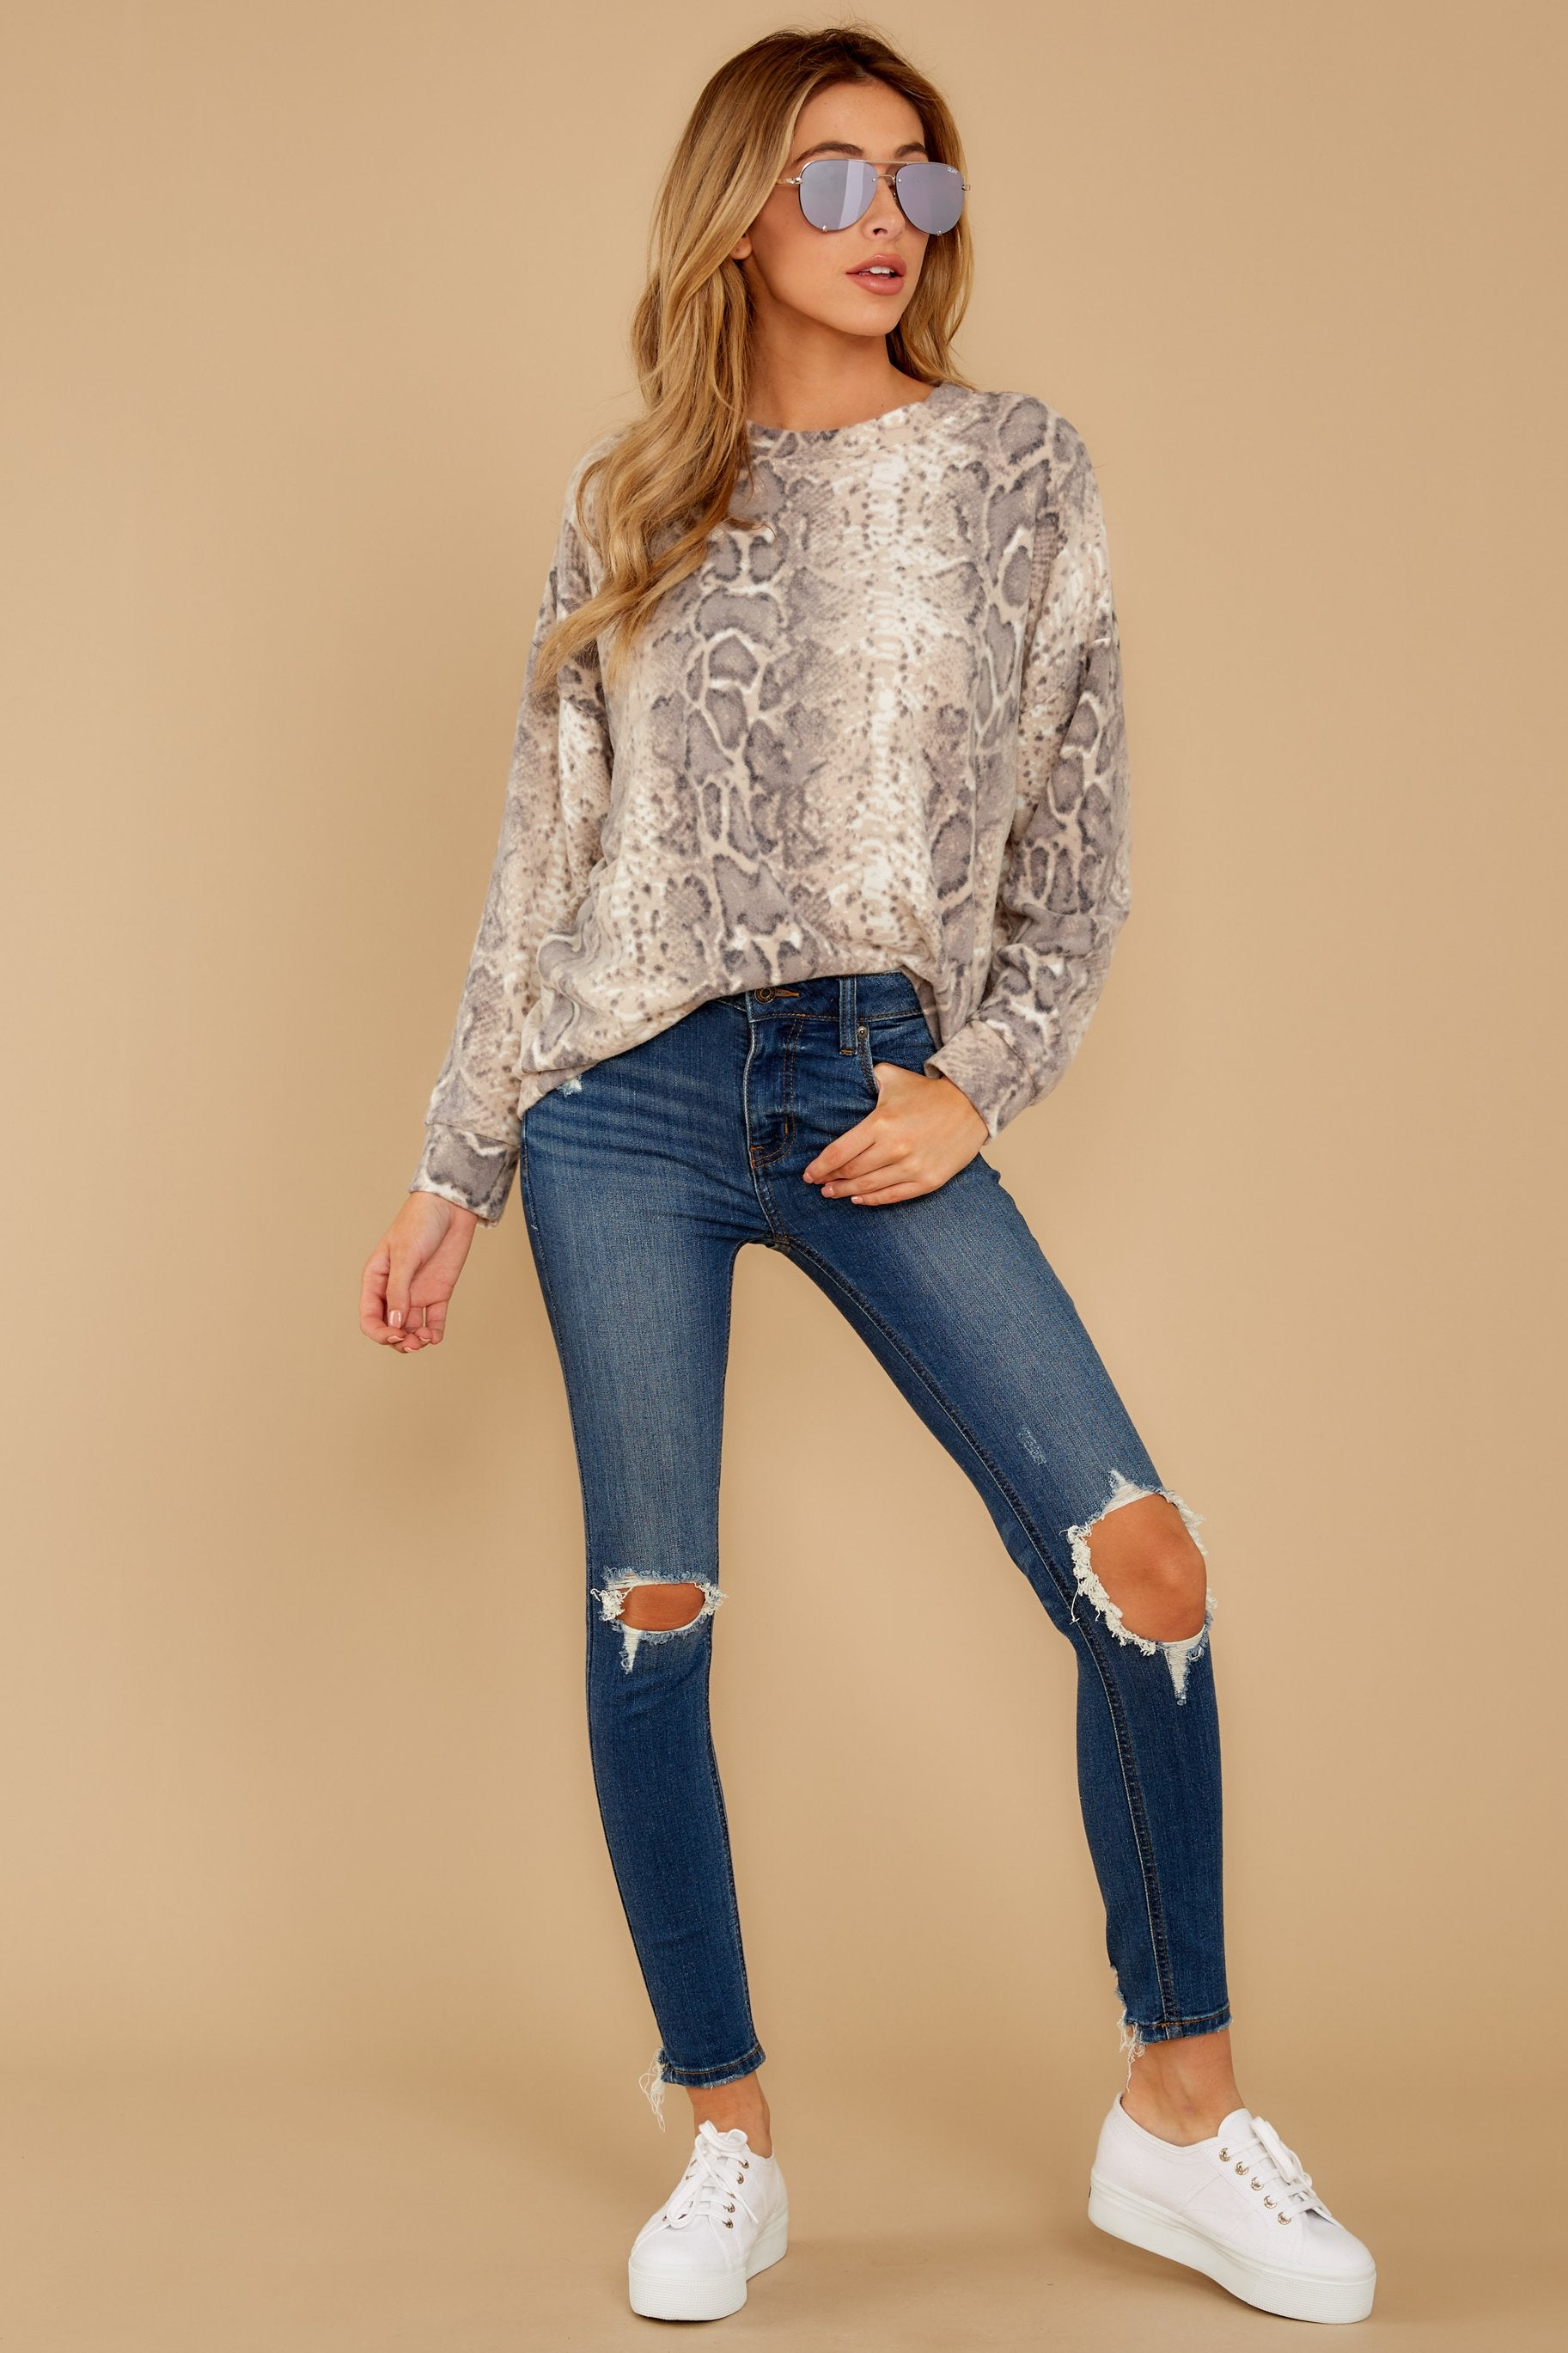 2 All Too Well Taupe Snake Print Top at reddressboutique.com